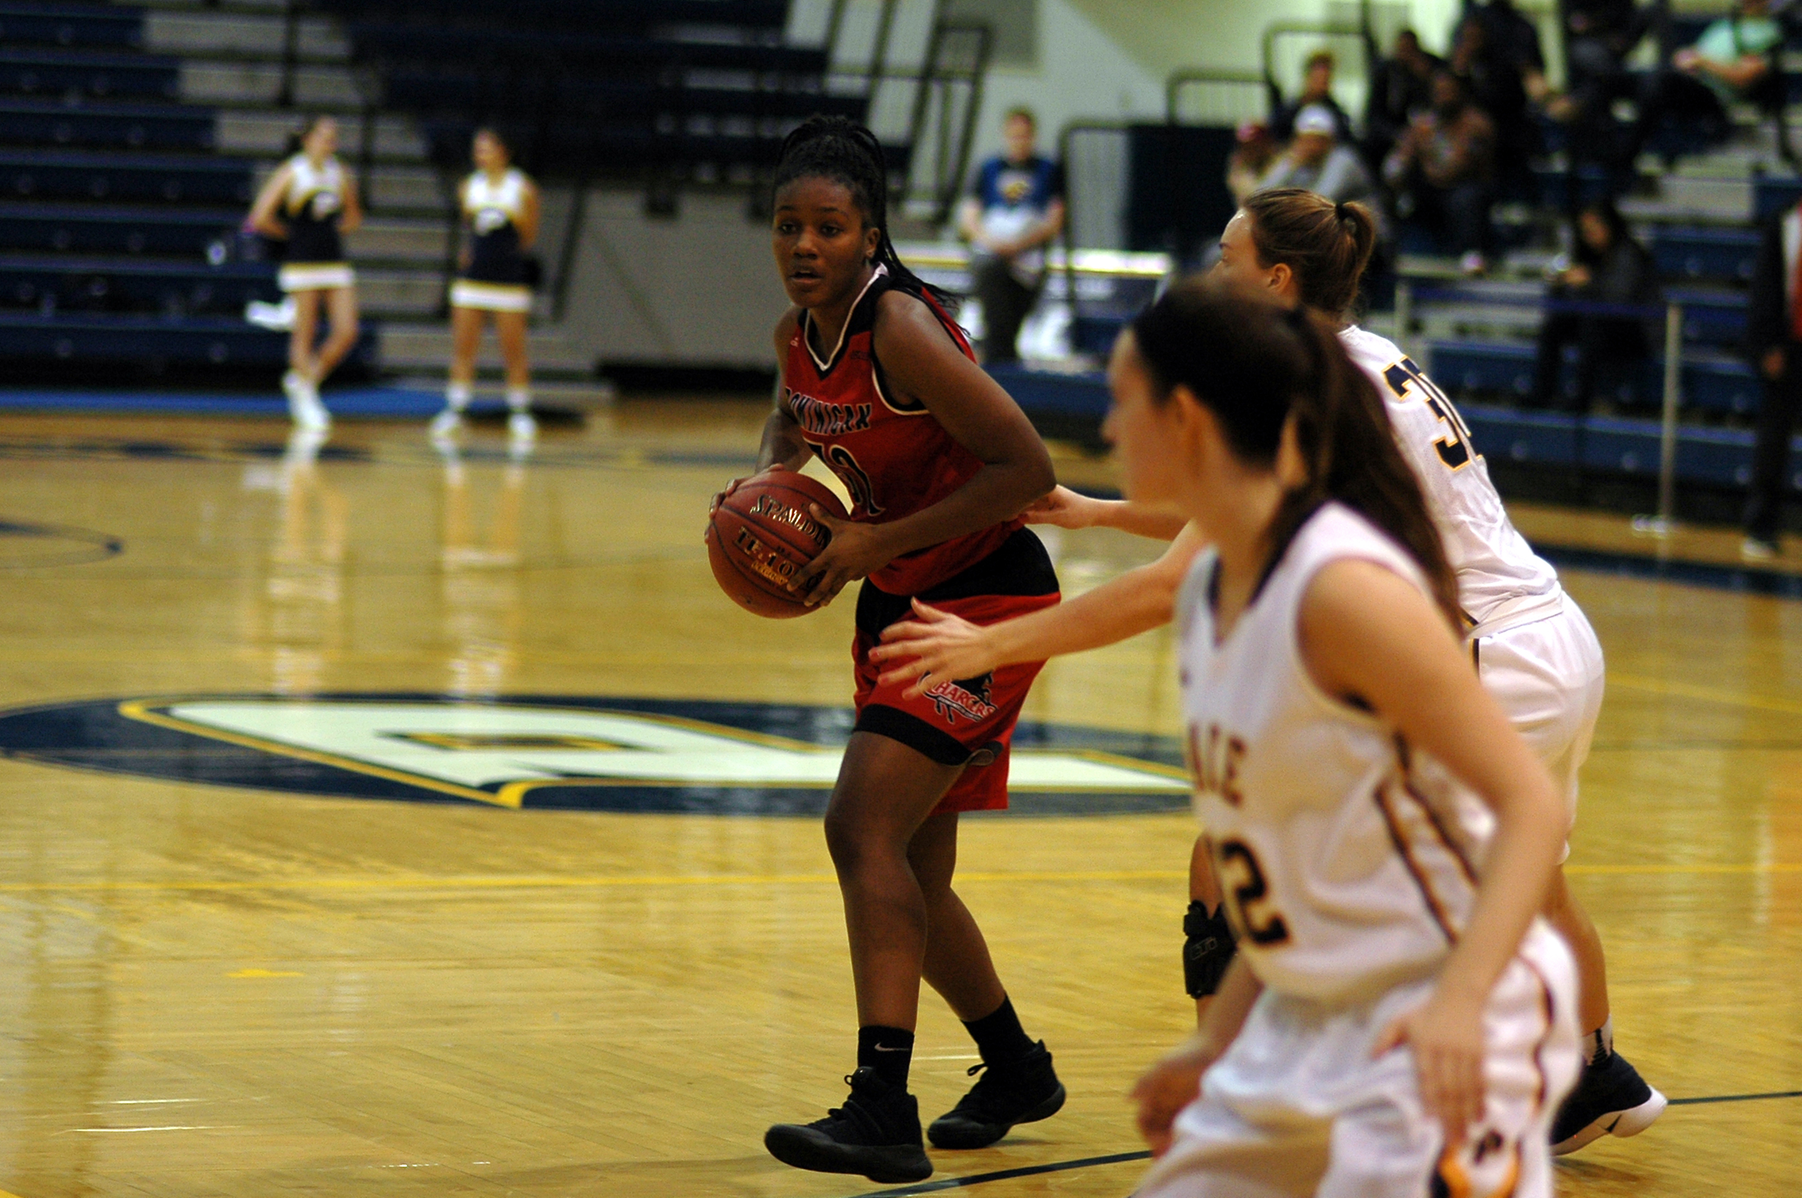 Senior Stefani Alston who had a team best 10 rebounds this evening